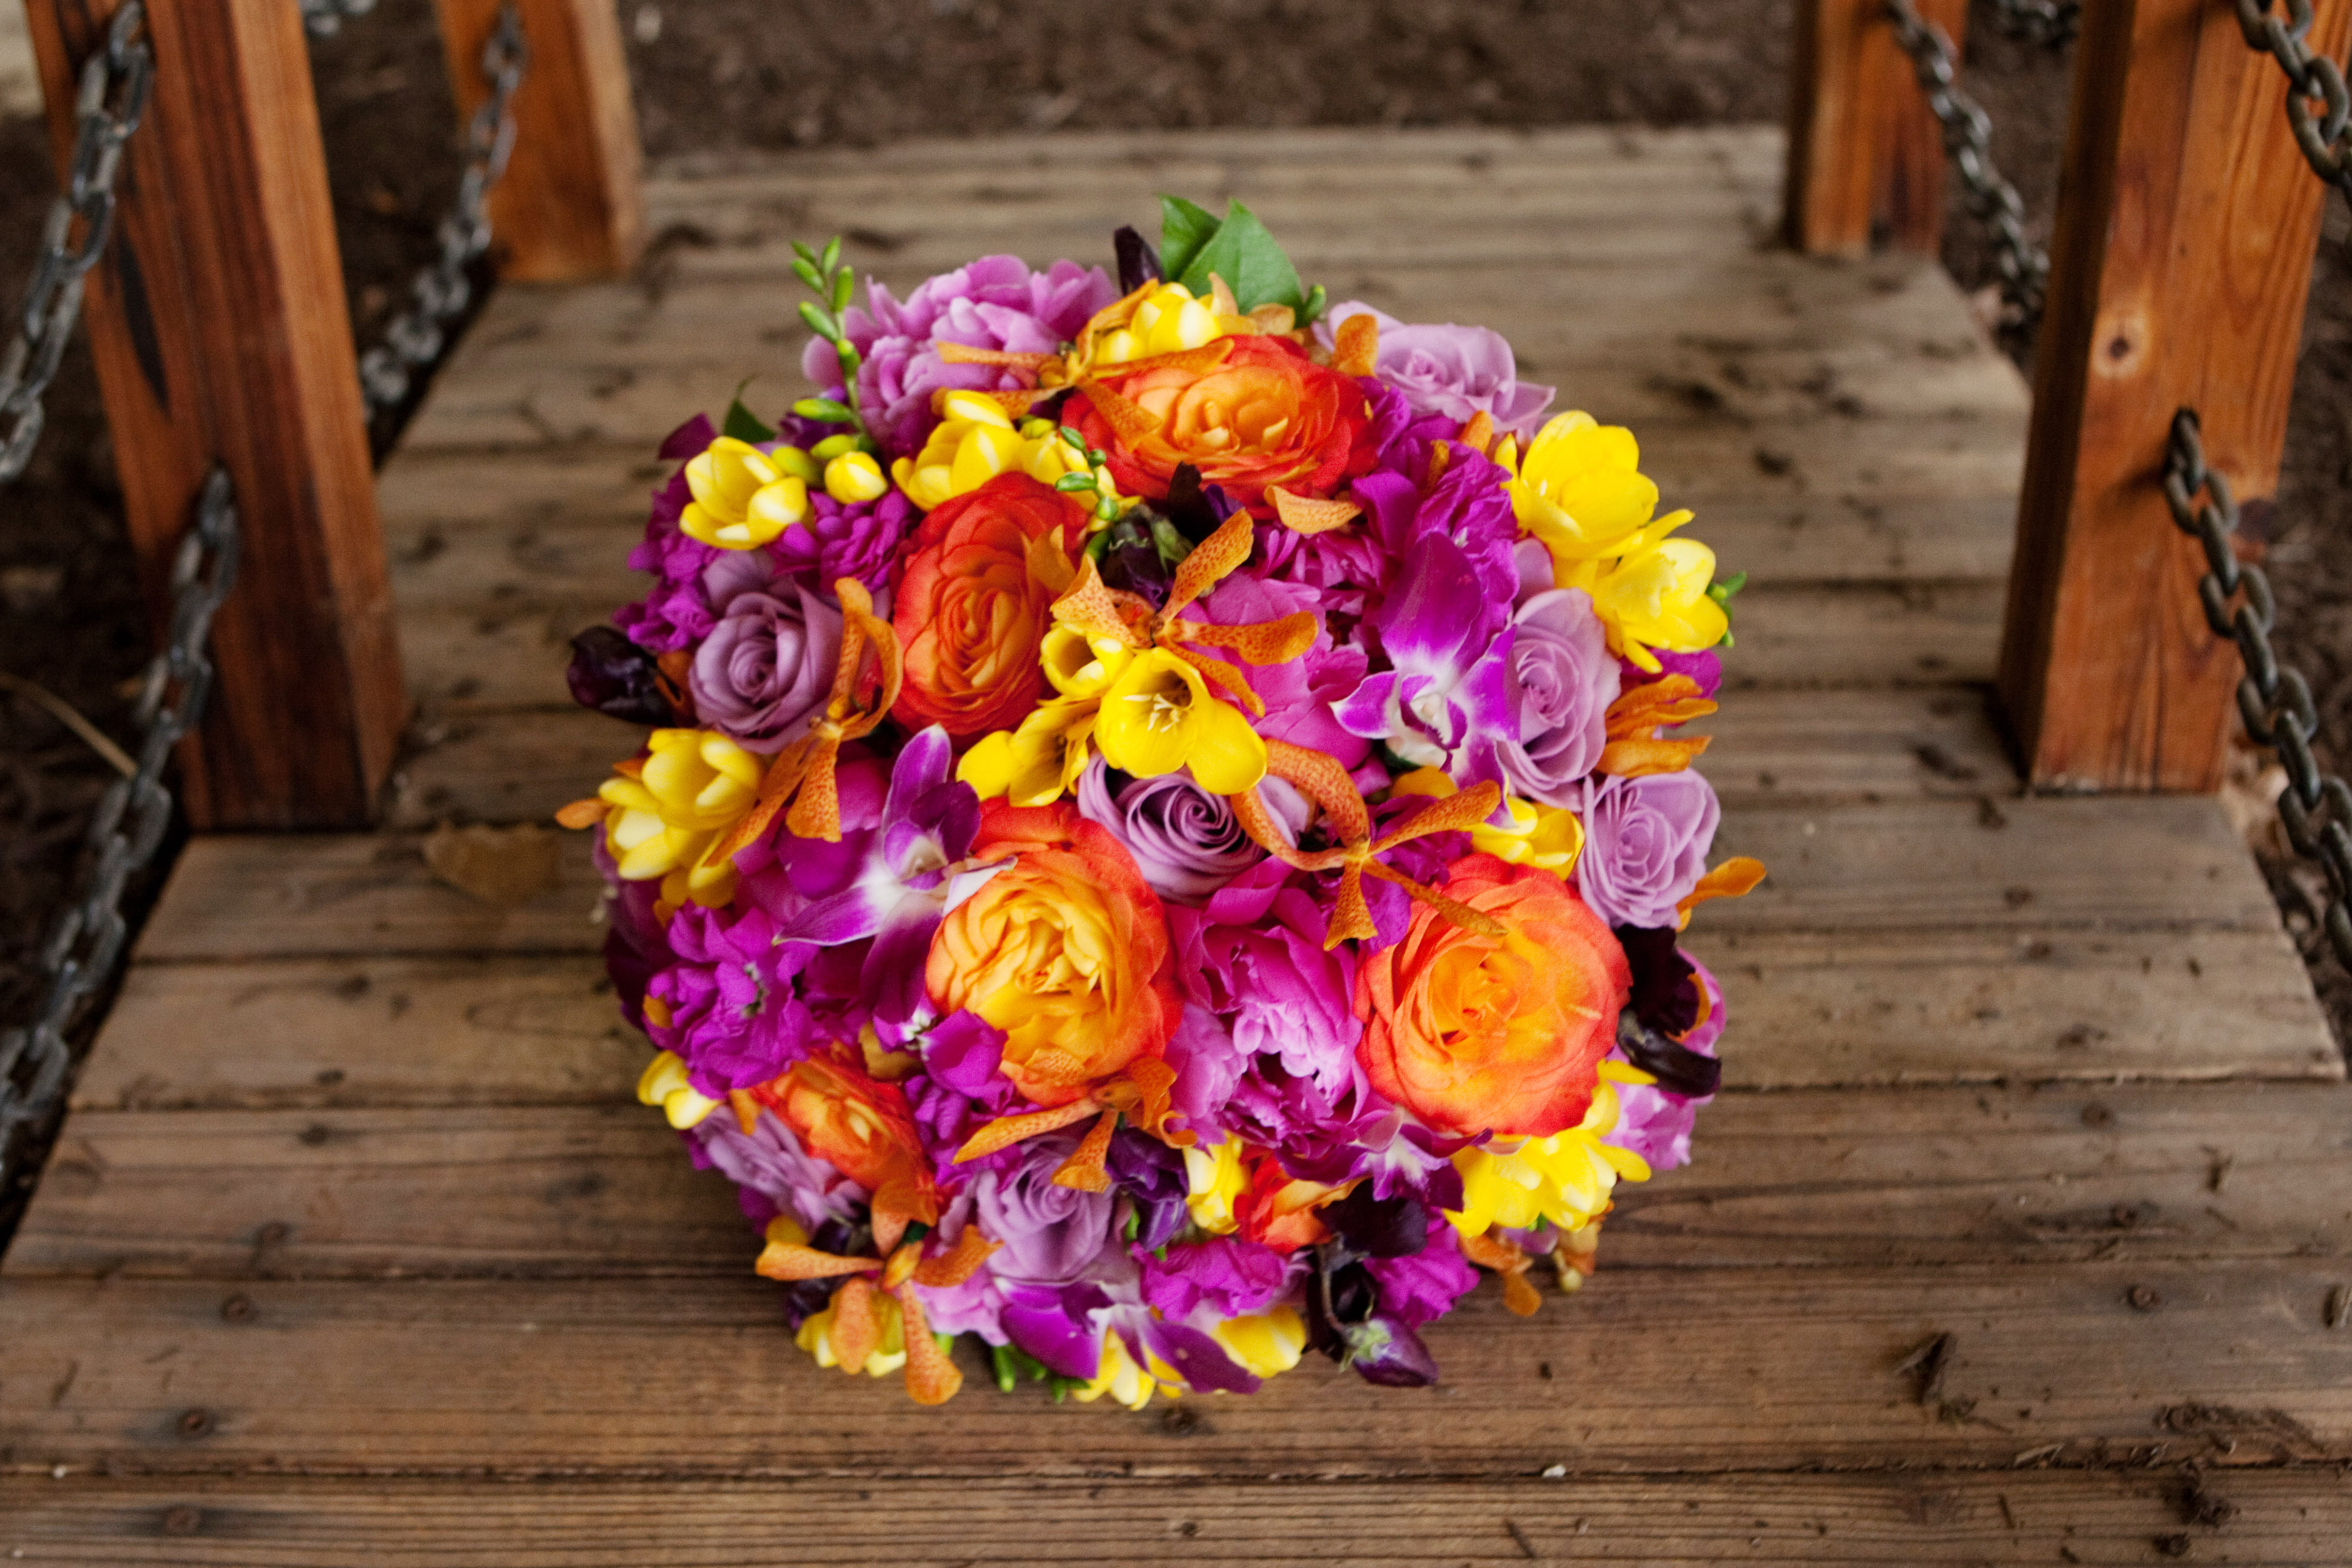 Nancees Blog A Classic And Popular Wedding Color Combination Is A